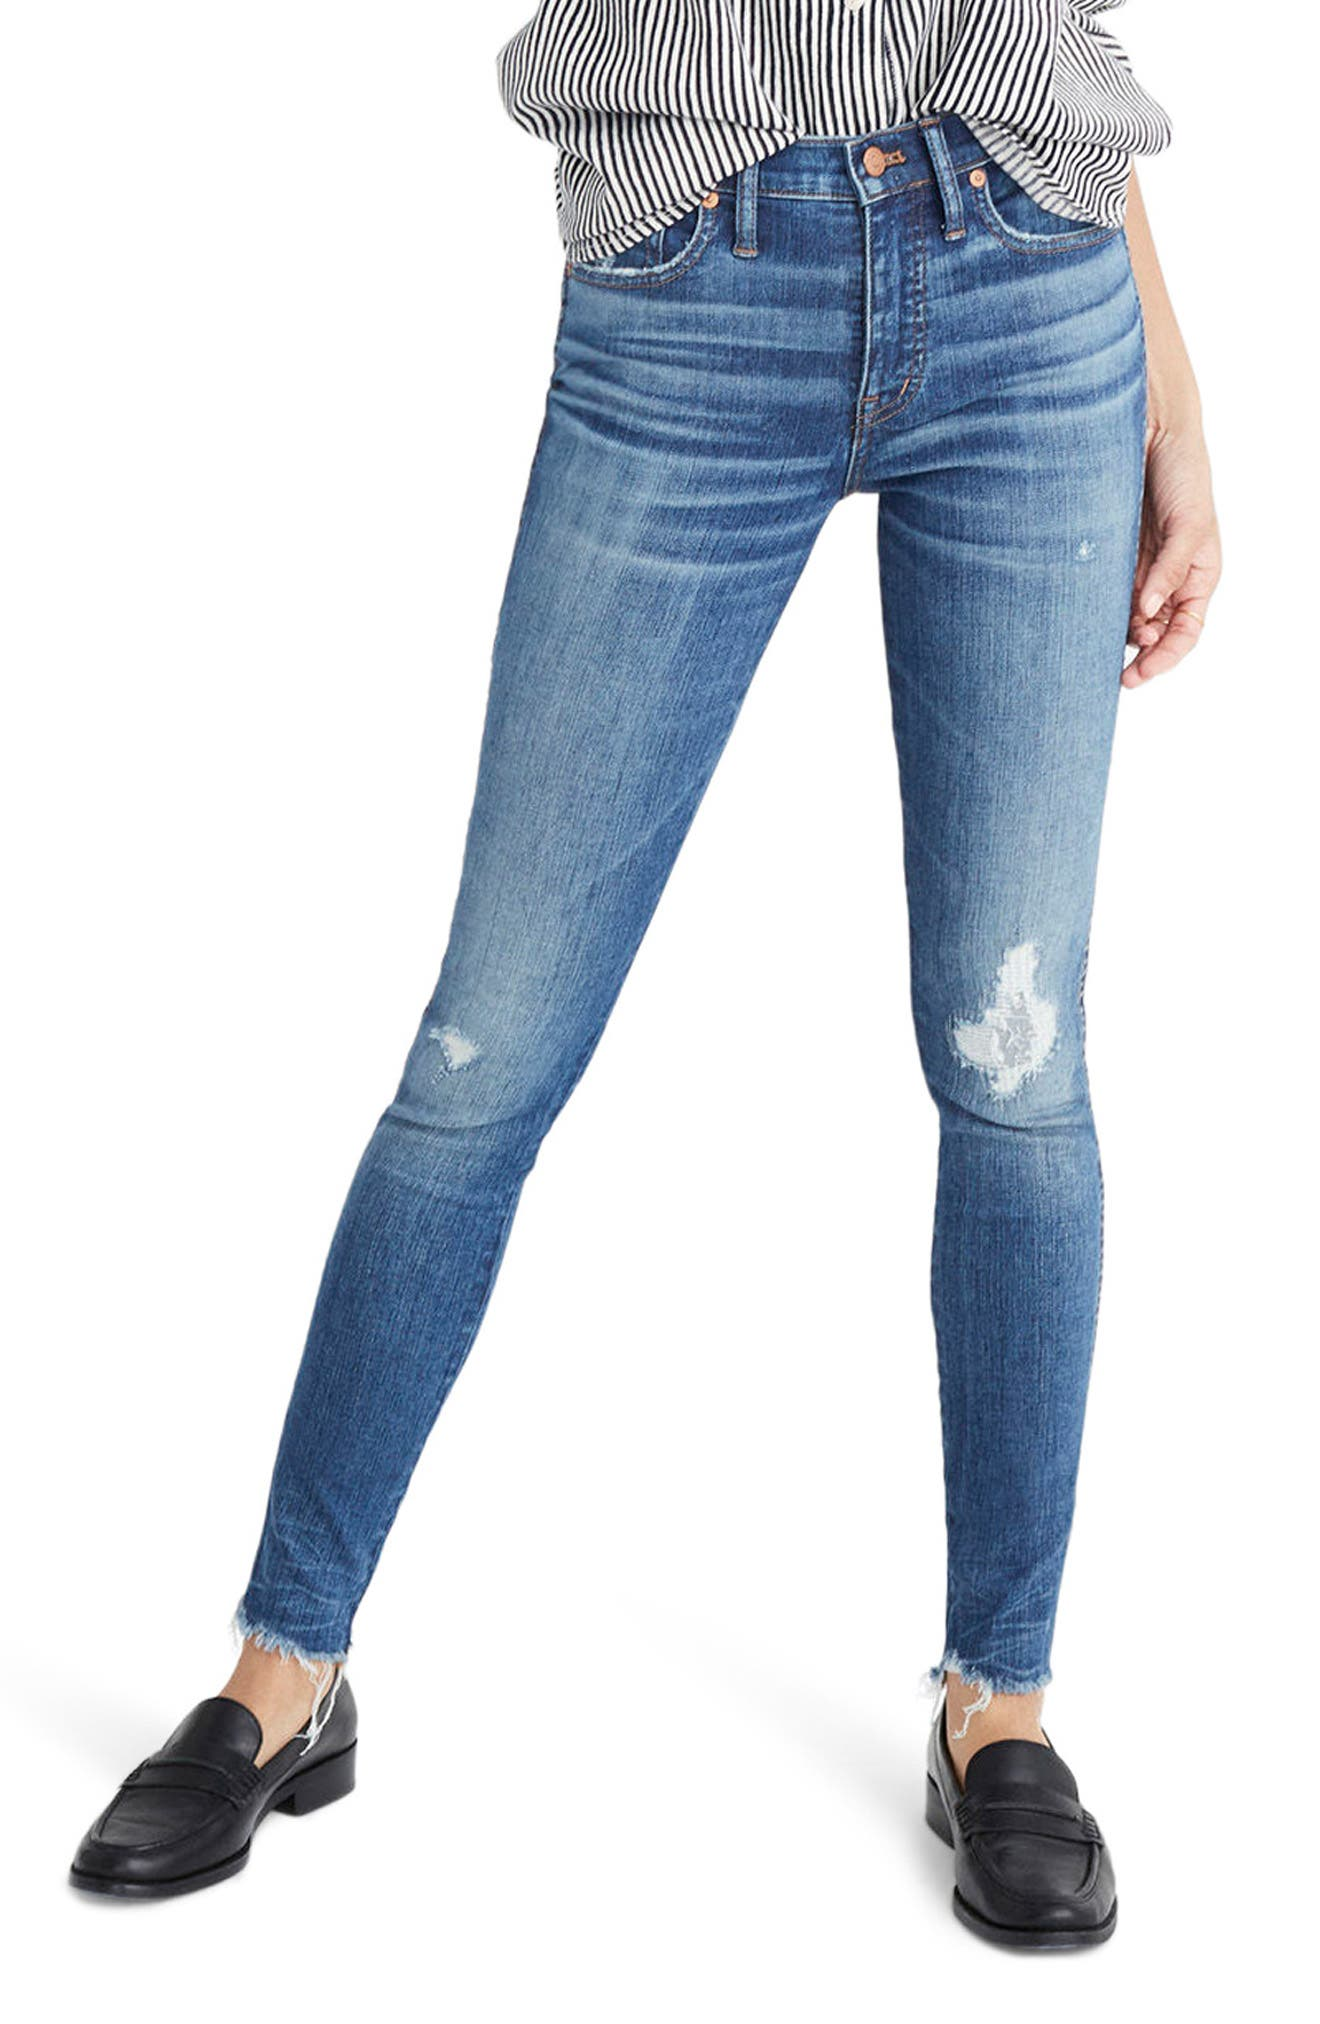 9-Inch High Waist Ankle Skinny Jeans,                         Main,                         color, Allegra